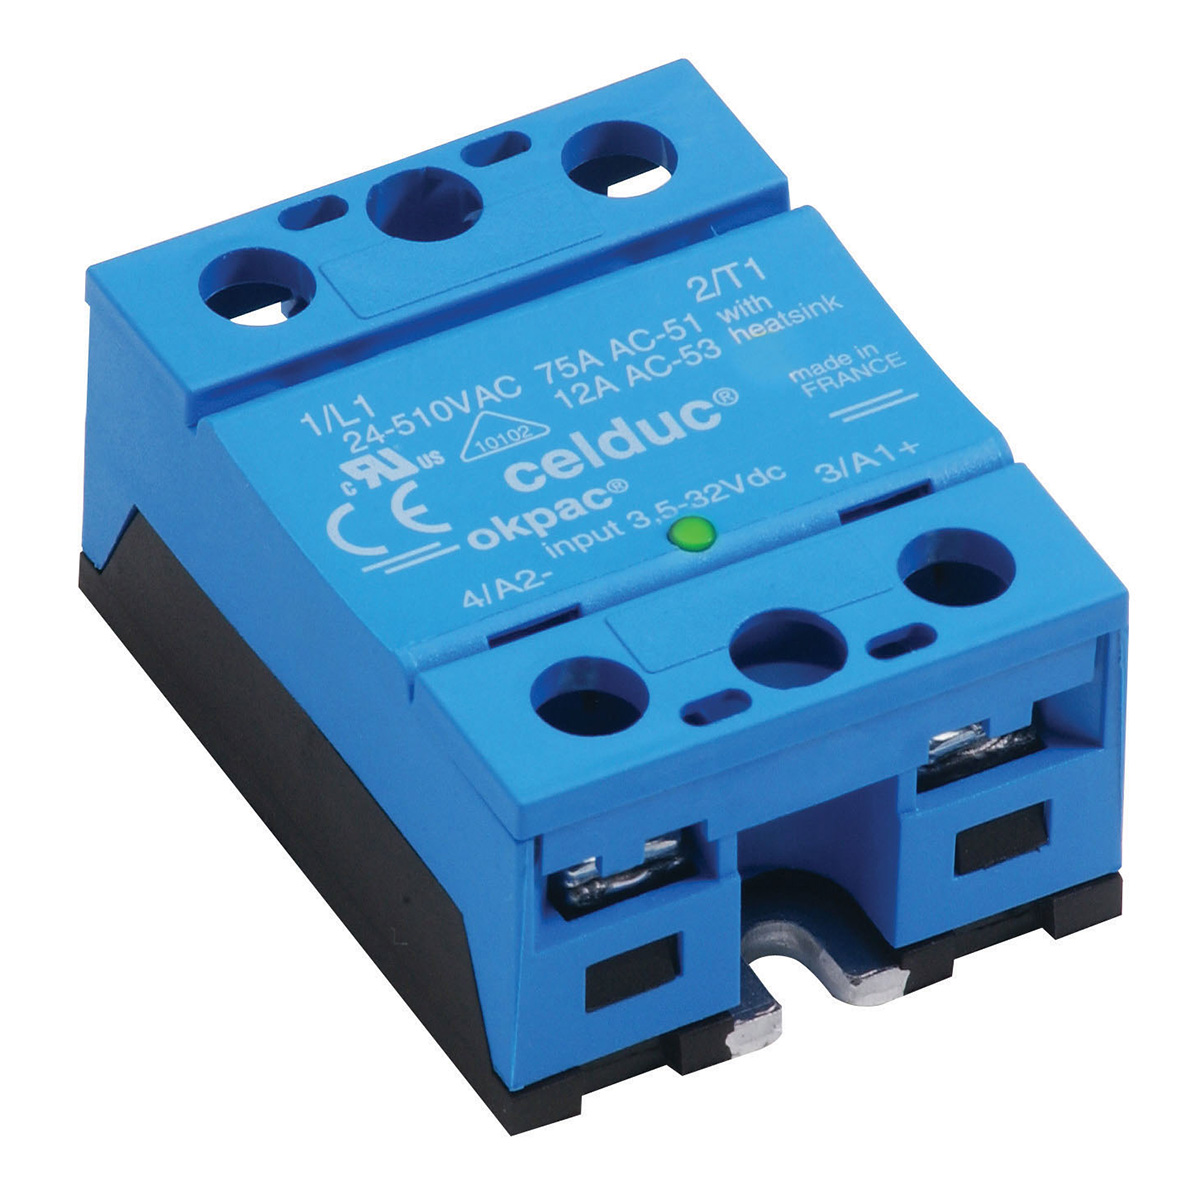 So865970 50 Amp Ac Voltage Input Solid State Relay Tecnologic Uk For